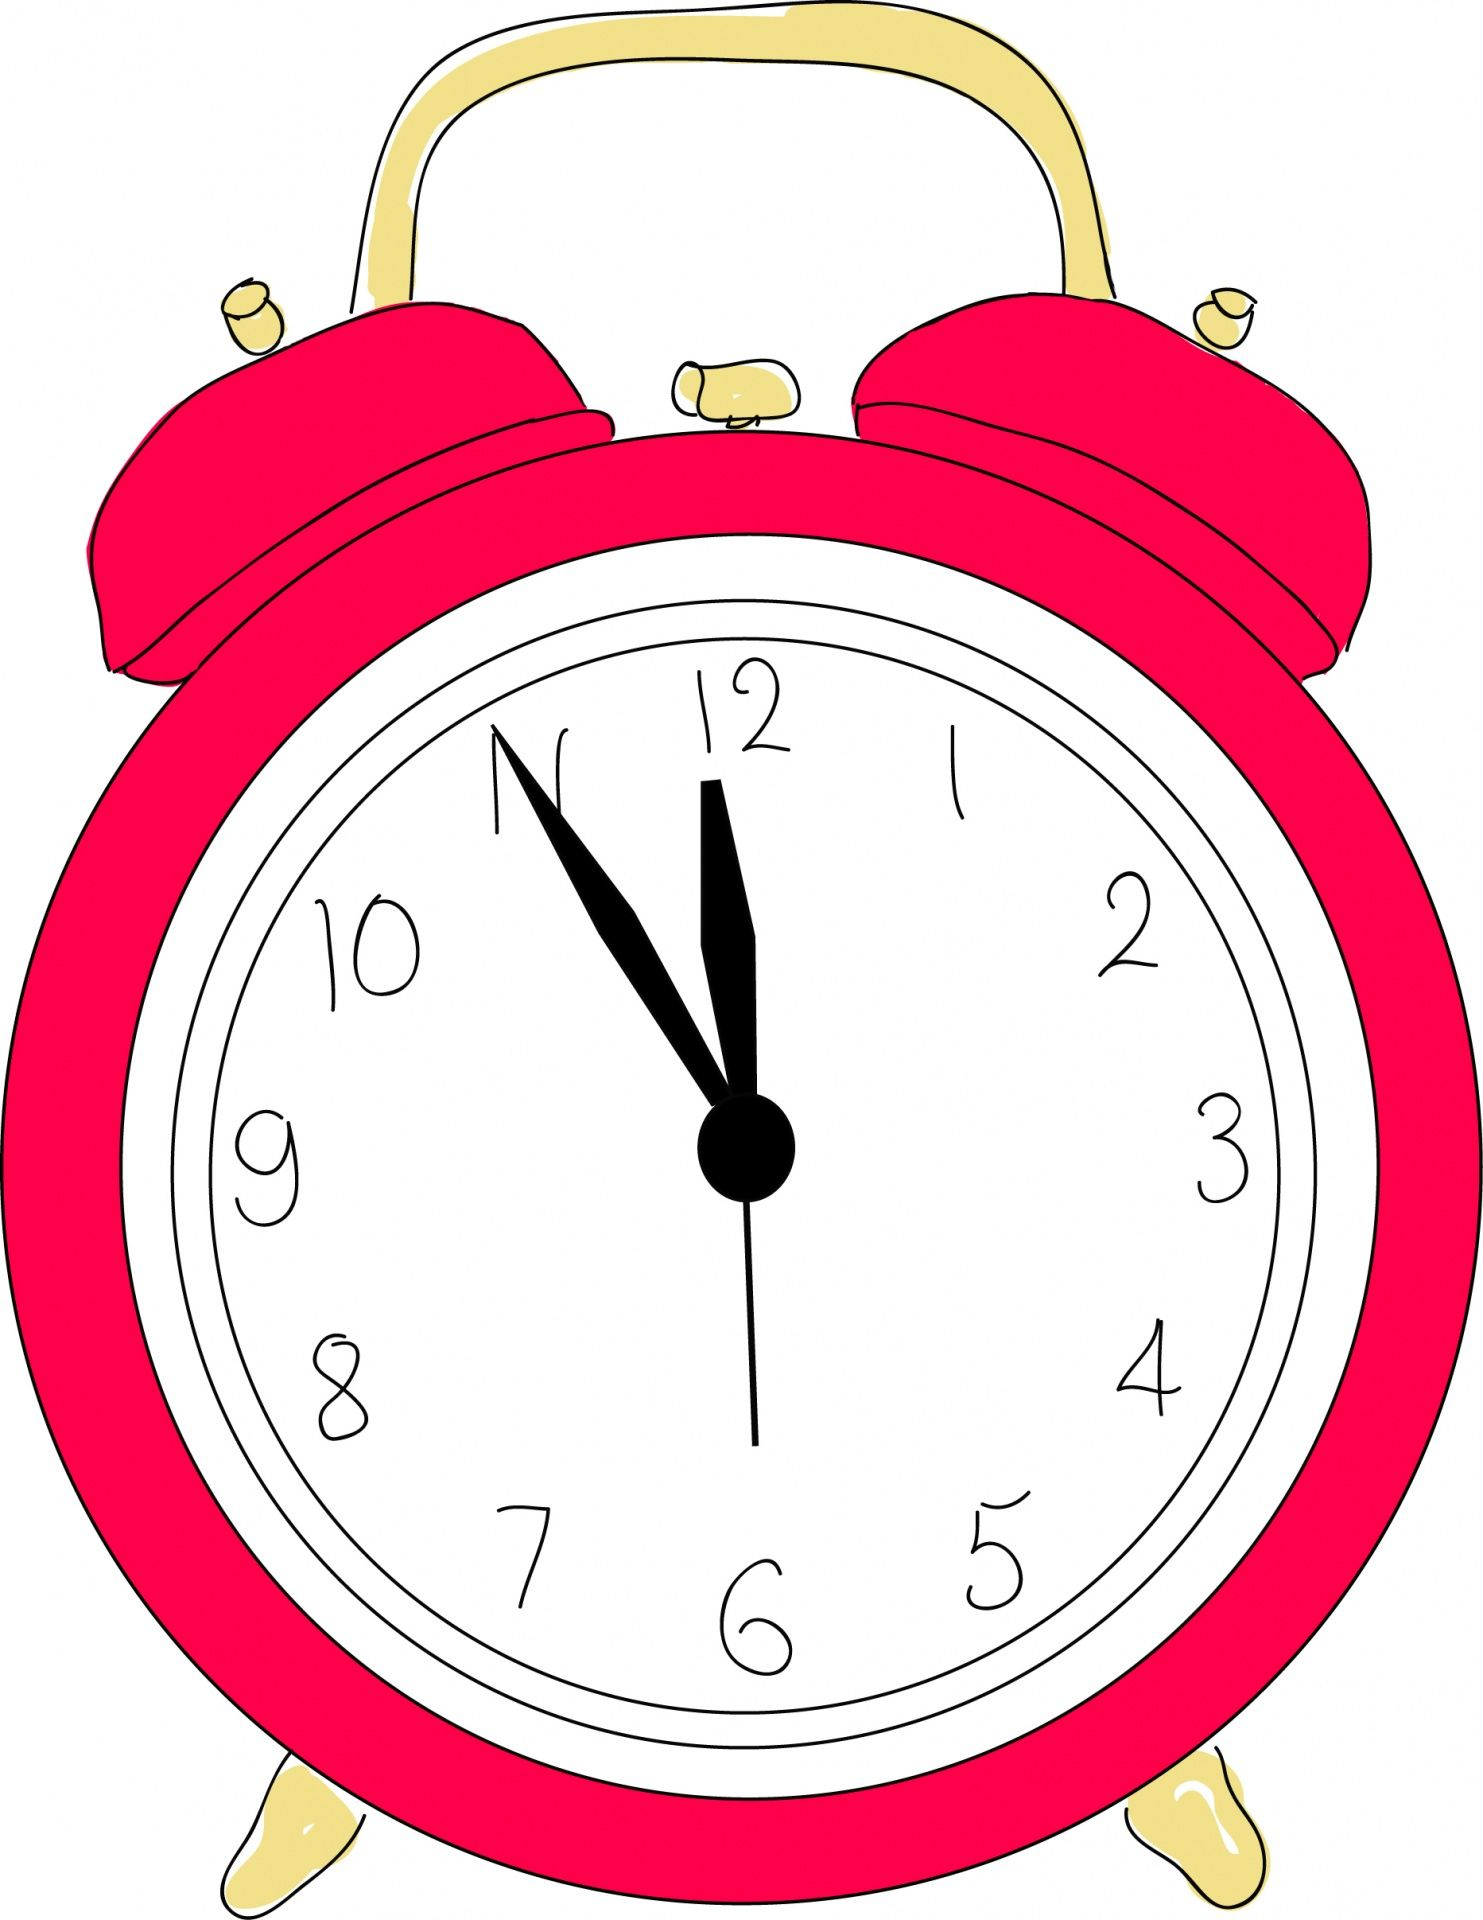 alarm clock clipart different clip arts pinterest alarm clocks rh pinterest com clipart of clocks with time clipart of clocks with time